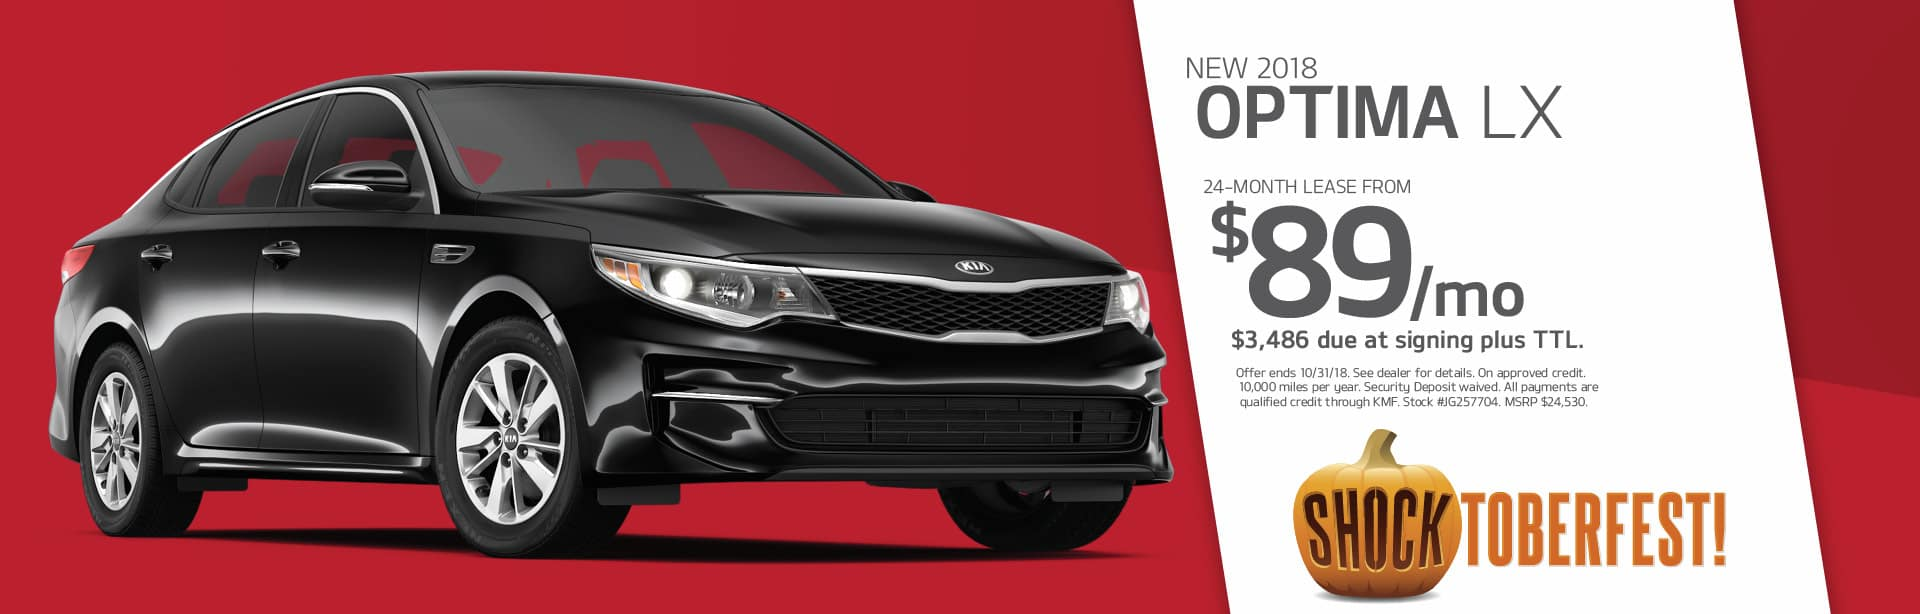 Captivating Raceway Kia Of Freehold | Kia Dealer In Freehold, NJ